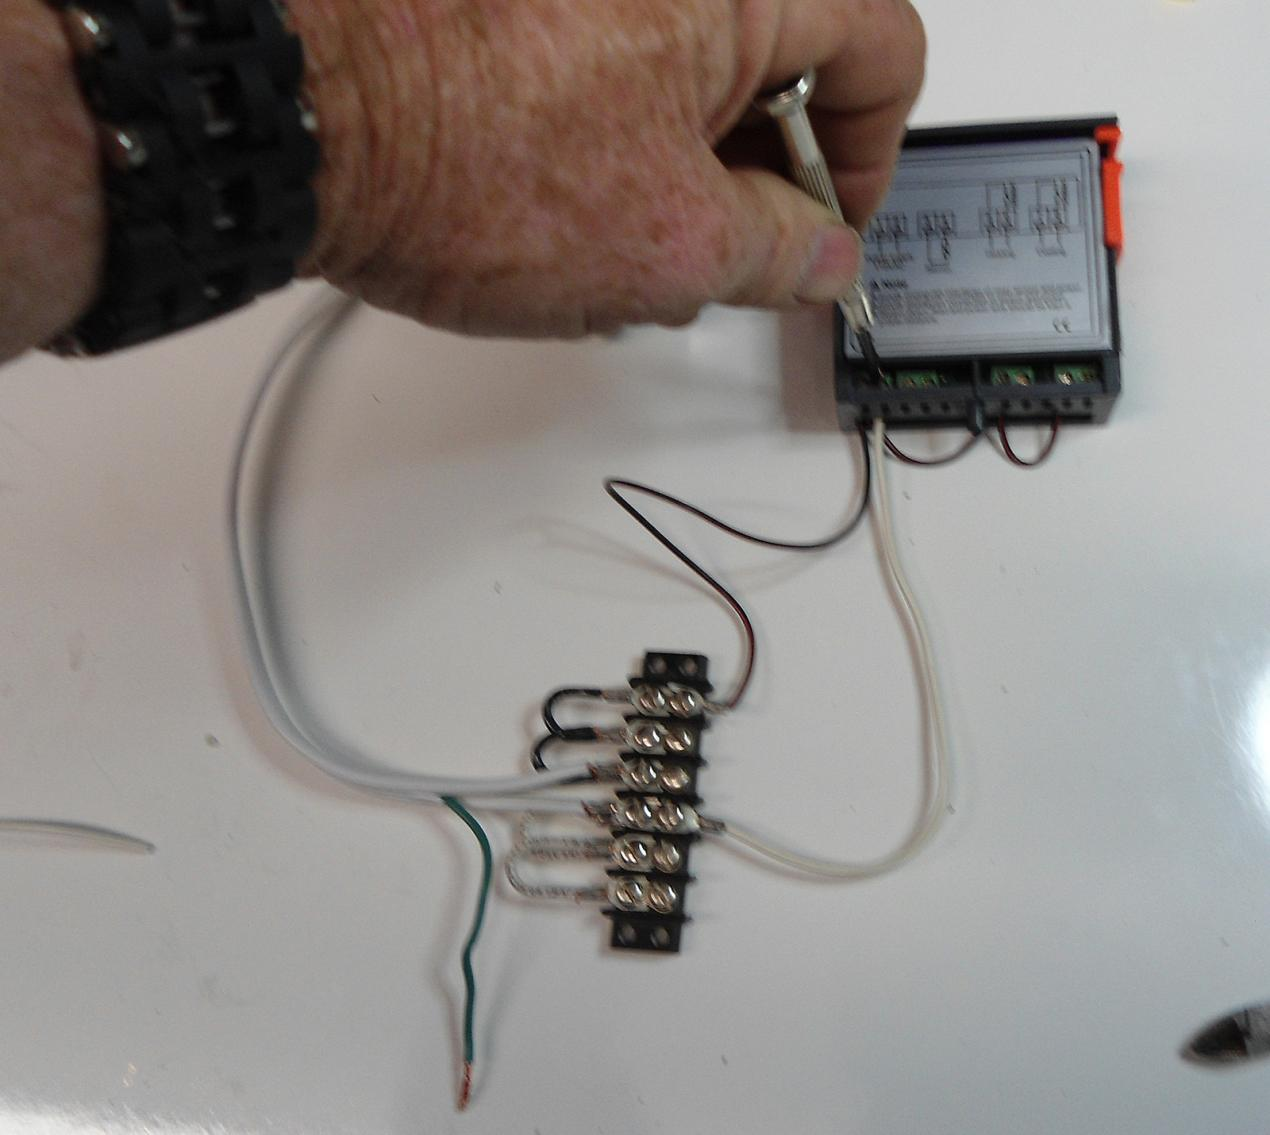 Wiring An Stc 1000 Heat And Cool Thermostat Step By Diagram For Temperature Controlled Dsc00576